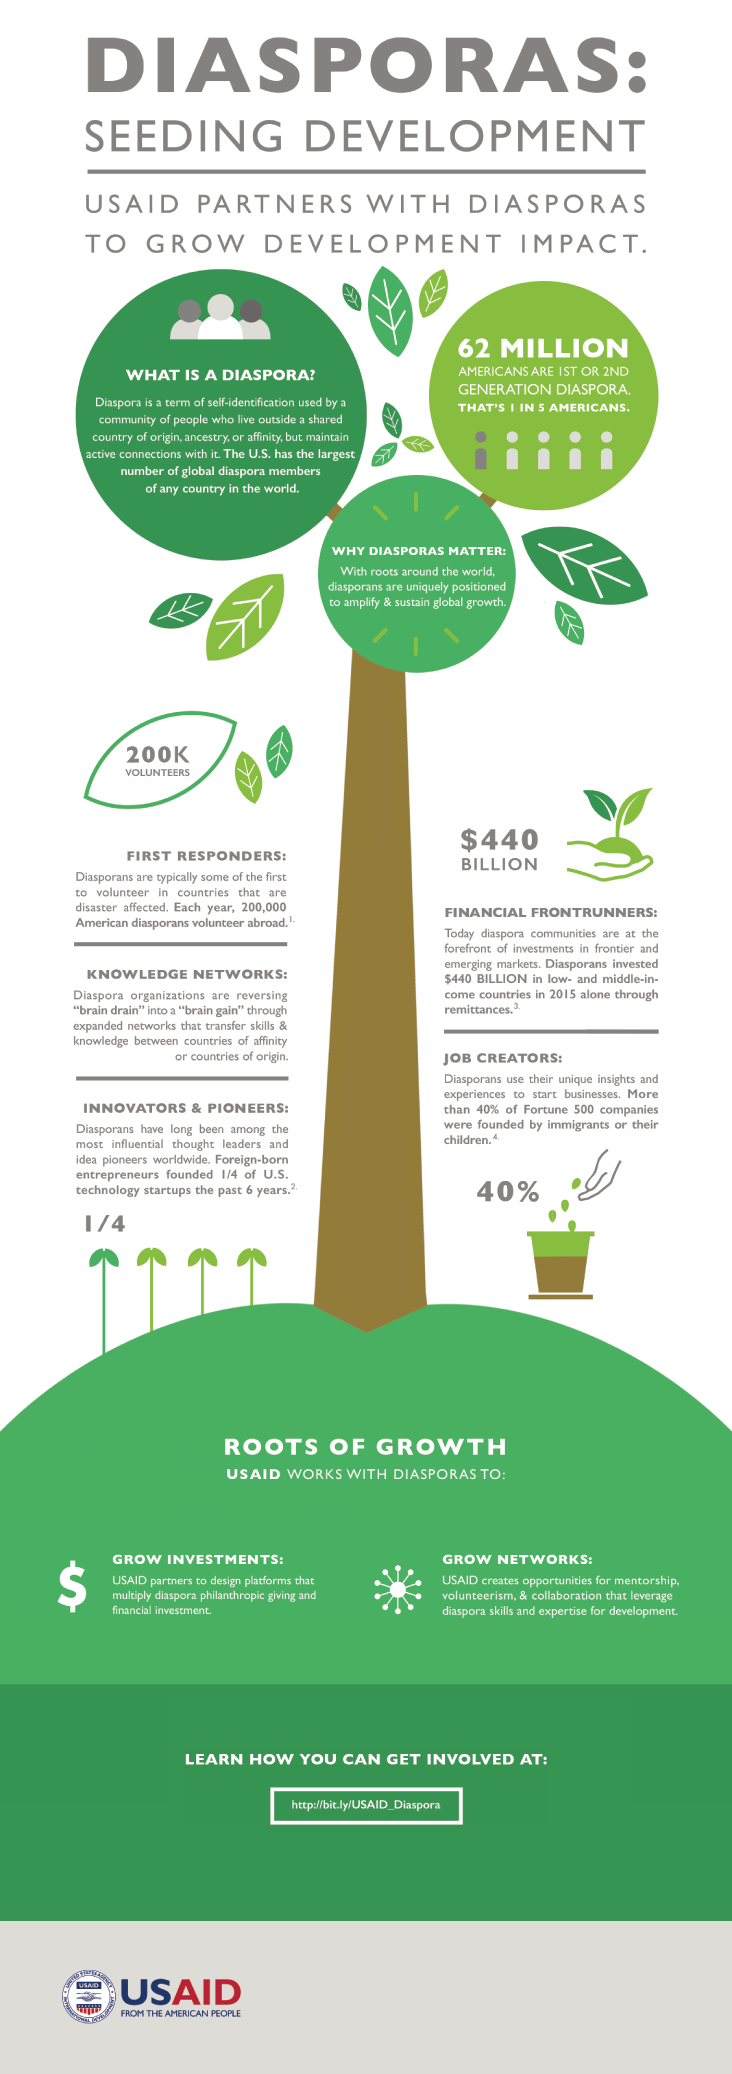 Diasporas: Seeding Impact Infographic. See below for full text